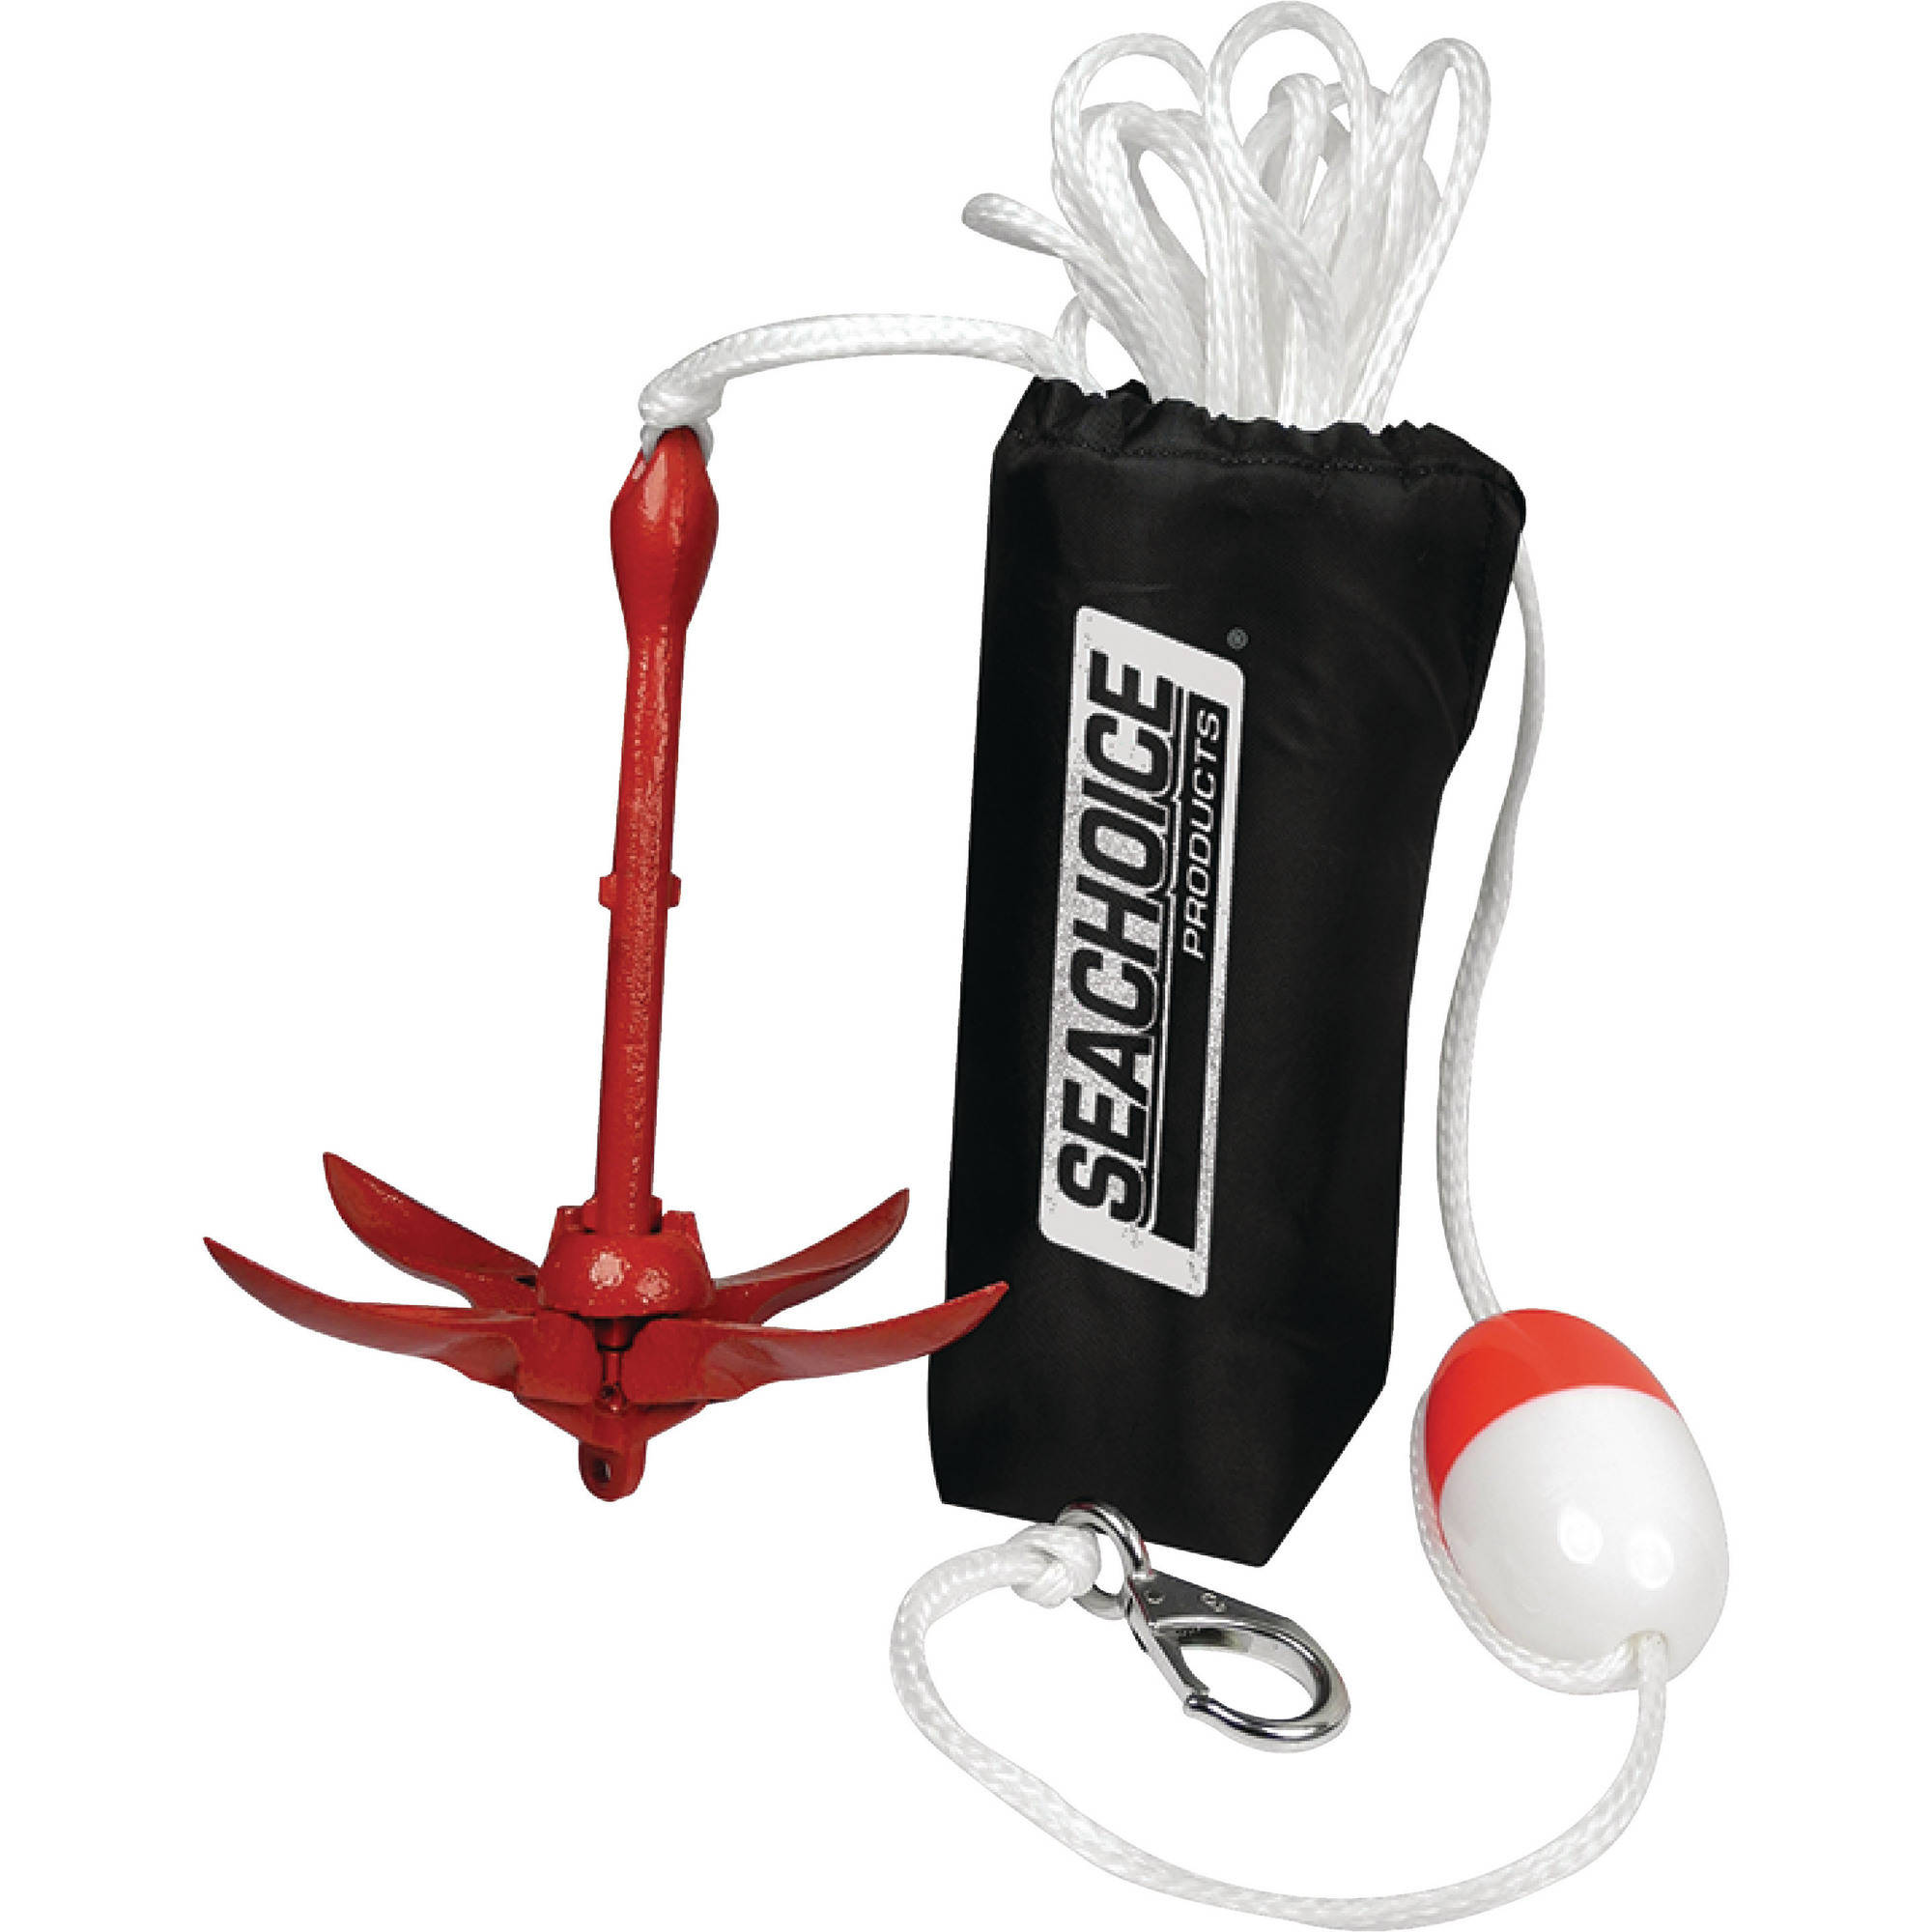 "Click here to buy Seachoice 3.5 lb. Grapnel Anchor Kit For Boats 5 to 12' (Includes Anchor, 1 4"" x 25' Line, Adjustable Buoy, S S Hook and Storage Bag) by Seachoice Products."